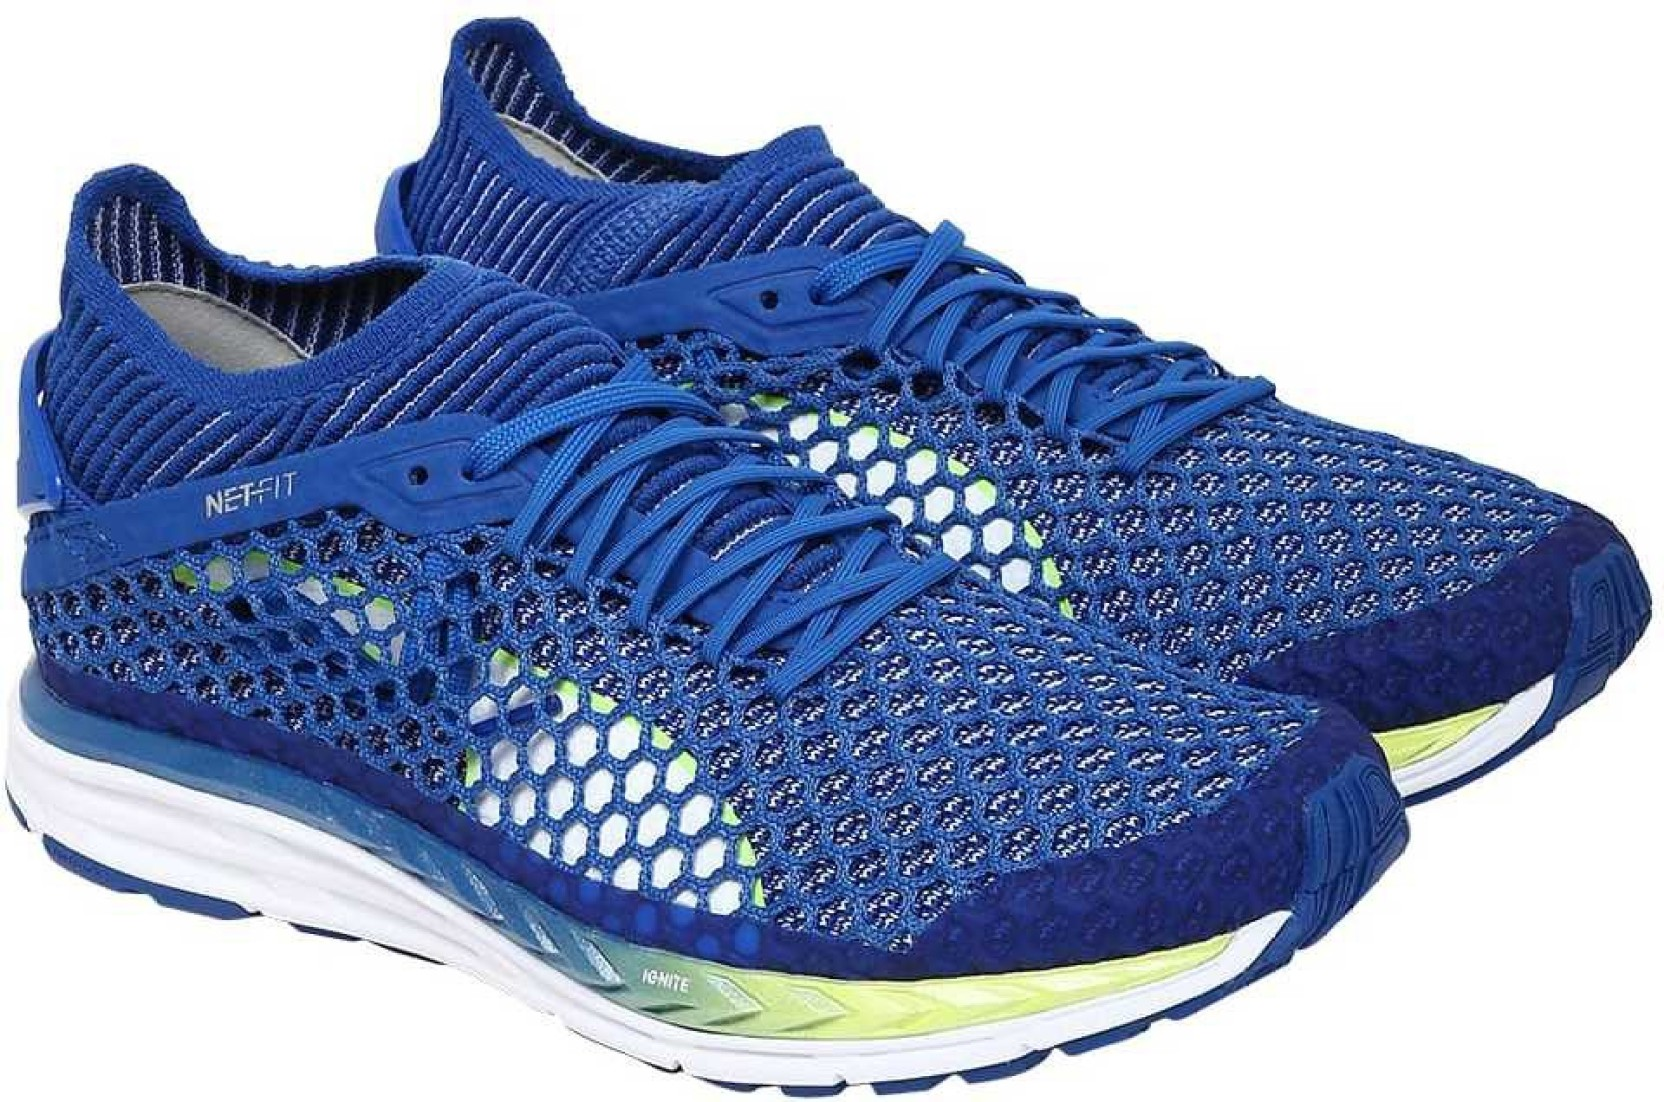 949775bc73a1 Puma Speed IGNITE NETFIT 2 Running Shoes For Men - Buy Puma Speed ...